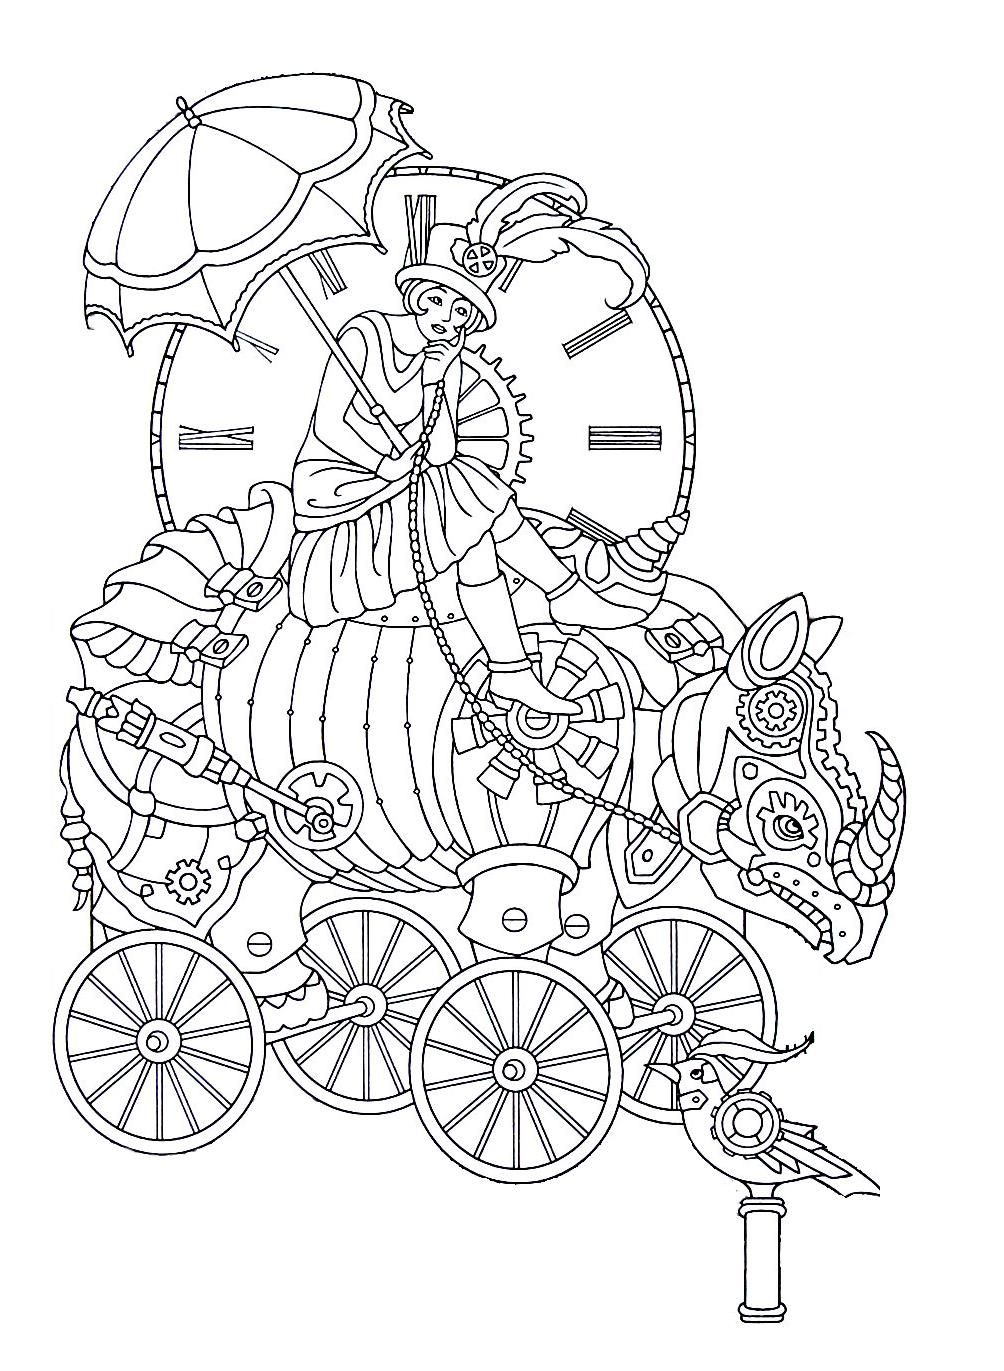 Steampunk Printable Coloring Book Page Easy To Medium Difficulty Coloring Steampunk Coloring Coloring Books Steampunk Printables